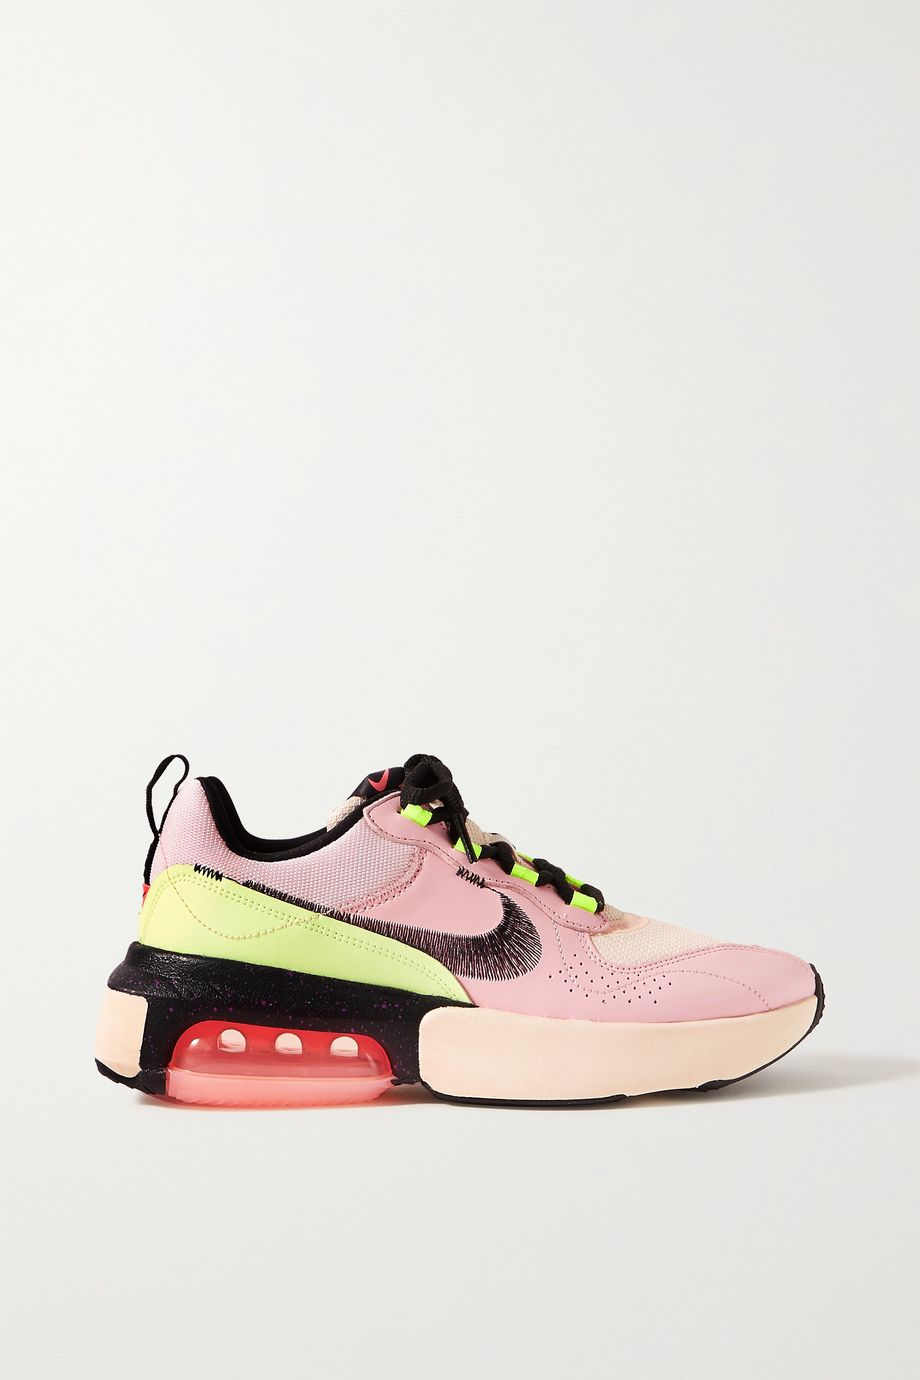 Nike Air Max Verona embroidered leather and mesh sneakers